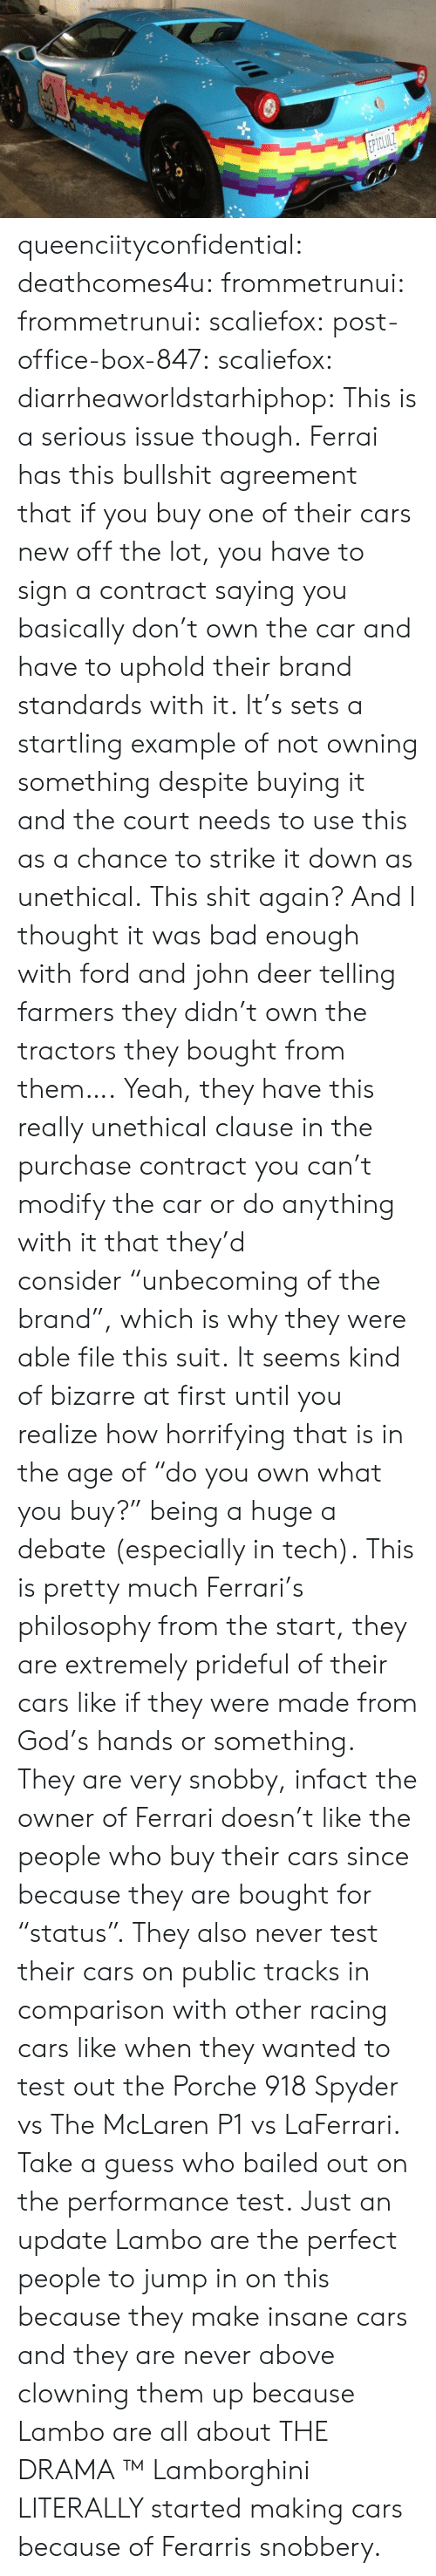 """Bailed: queenciityconfidential:  deathcomes4u: frommetrunui:  frommetrunui:  scaliefox:  post-office-box-847:  scaliefox:  diarrheaworldstarhiphop:  This is a serious issue though. Ferrai has this bullshit agreement that if you buy one of their cars new off the lot, you have to sign a contract saying you basically don't own the car and have to uphold their brand standards with it. It's sets a startling example of not owning something despite buying it and the court needs to use this as a chance to strike it down as unethical.  This shit again? And I thought it was bad enough with ford and john deer telling farmers they didn't own the tractors they bought from them….  Yeah, they have this really unethical clause in the purchase contract you can't modify the car or do anything with it that they'd consider""""unbecoming of the brand"""", which is why they were able file this suit. It seems kind of bizarre at first until you realize how horrifying that is in the age of """"do you own what you buy?"""" being a huge a debate (especially in tech).  This is pretty much Ferrari's philosophy from the start, they are extremely prideful of their cars like if they were made from God's hands or something.  They are very snobby, infact the owner of Ferrari doesn't like the people who buy their cars since because they are bought for """"status"""".  They also never test their cars on public tracks in comparison with other racing cars like when they wanted to test out the Porche 918 Spyder vs The McLaren P1 vs LaFerrari. Take a guess who bailed out on the performance test.  Just an update  Lambo are the perfect people to jump in on this because they make insane cars and they are never above clowning them up because Lambo are all about THE DRAMA ™  Lamborghini LITERALLY started making cars because of Ferarris snobbery."""